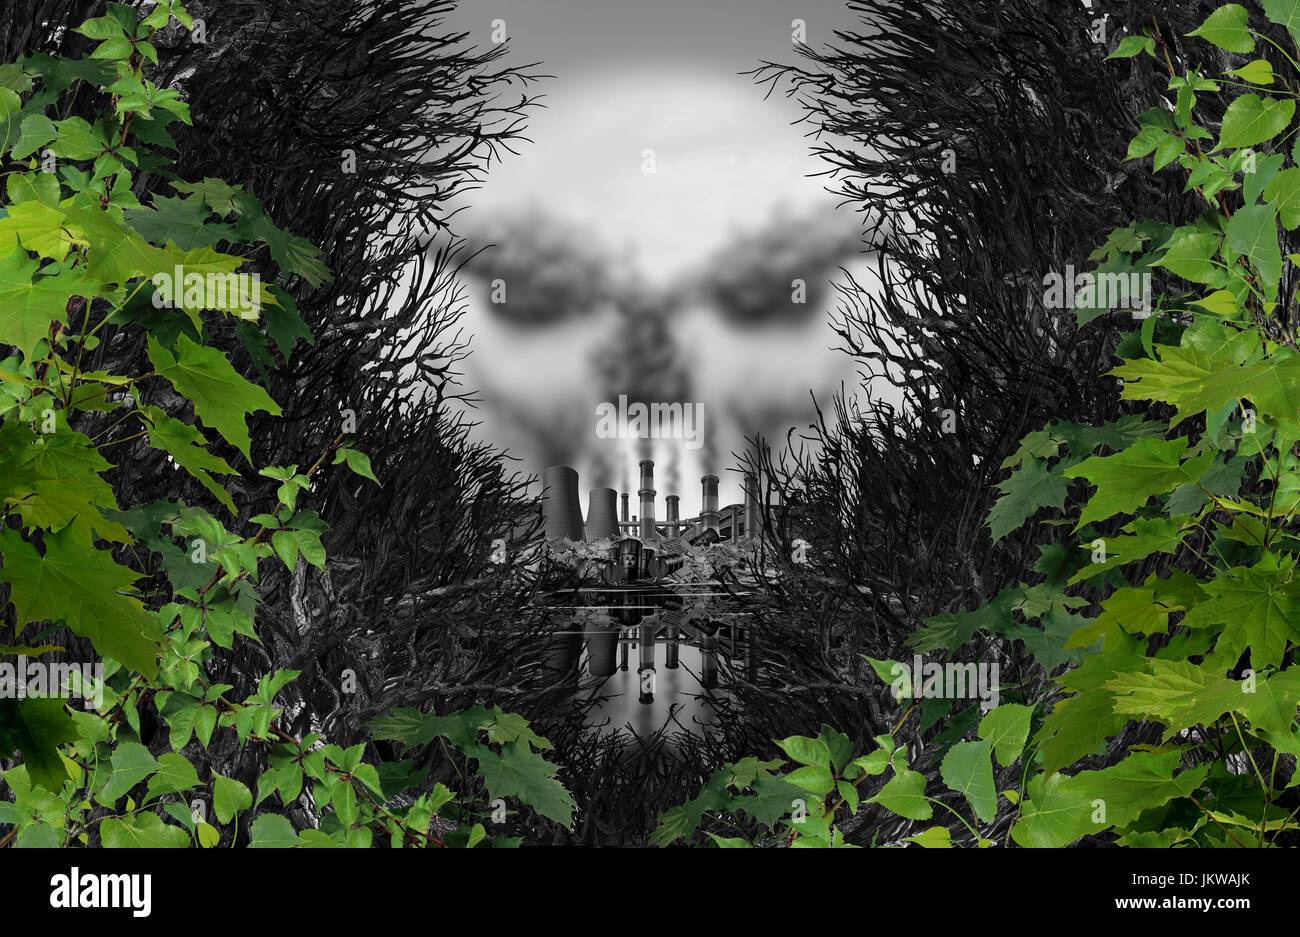 Pollution poison danger concept as an industrial scene discovered through a surreal forest shaped as a death skull - Stock Image